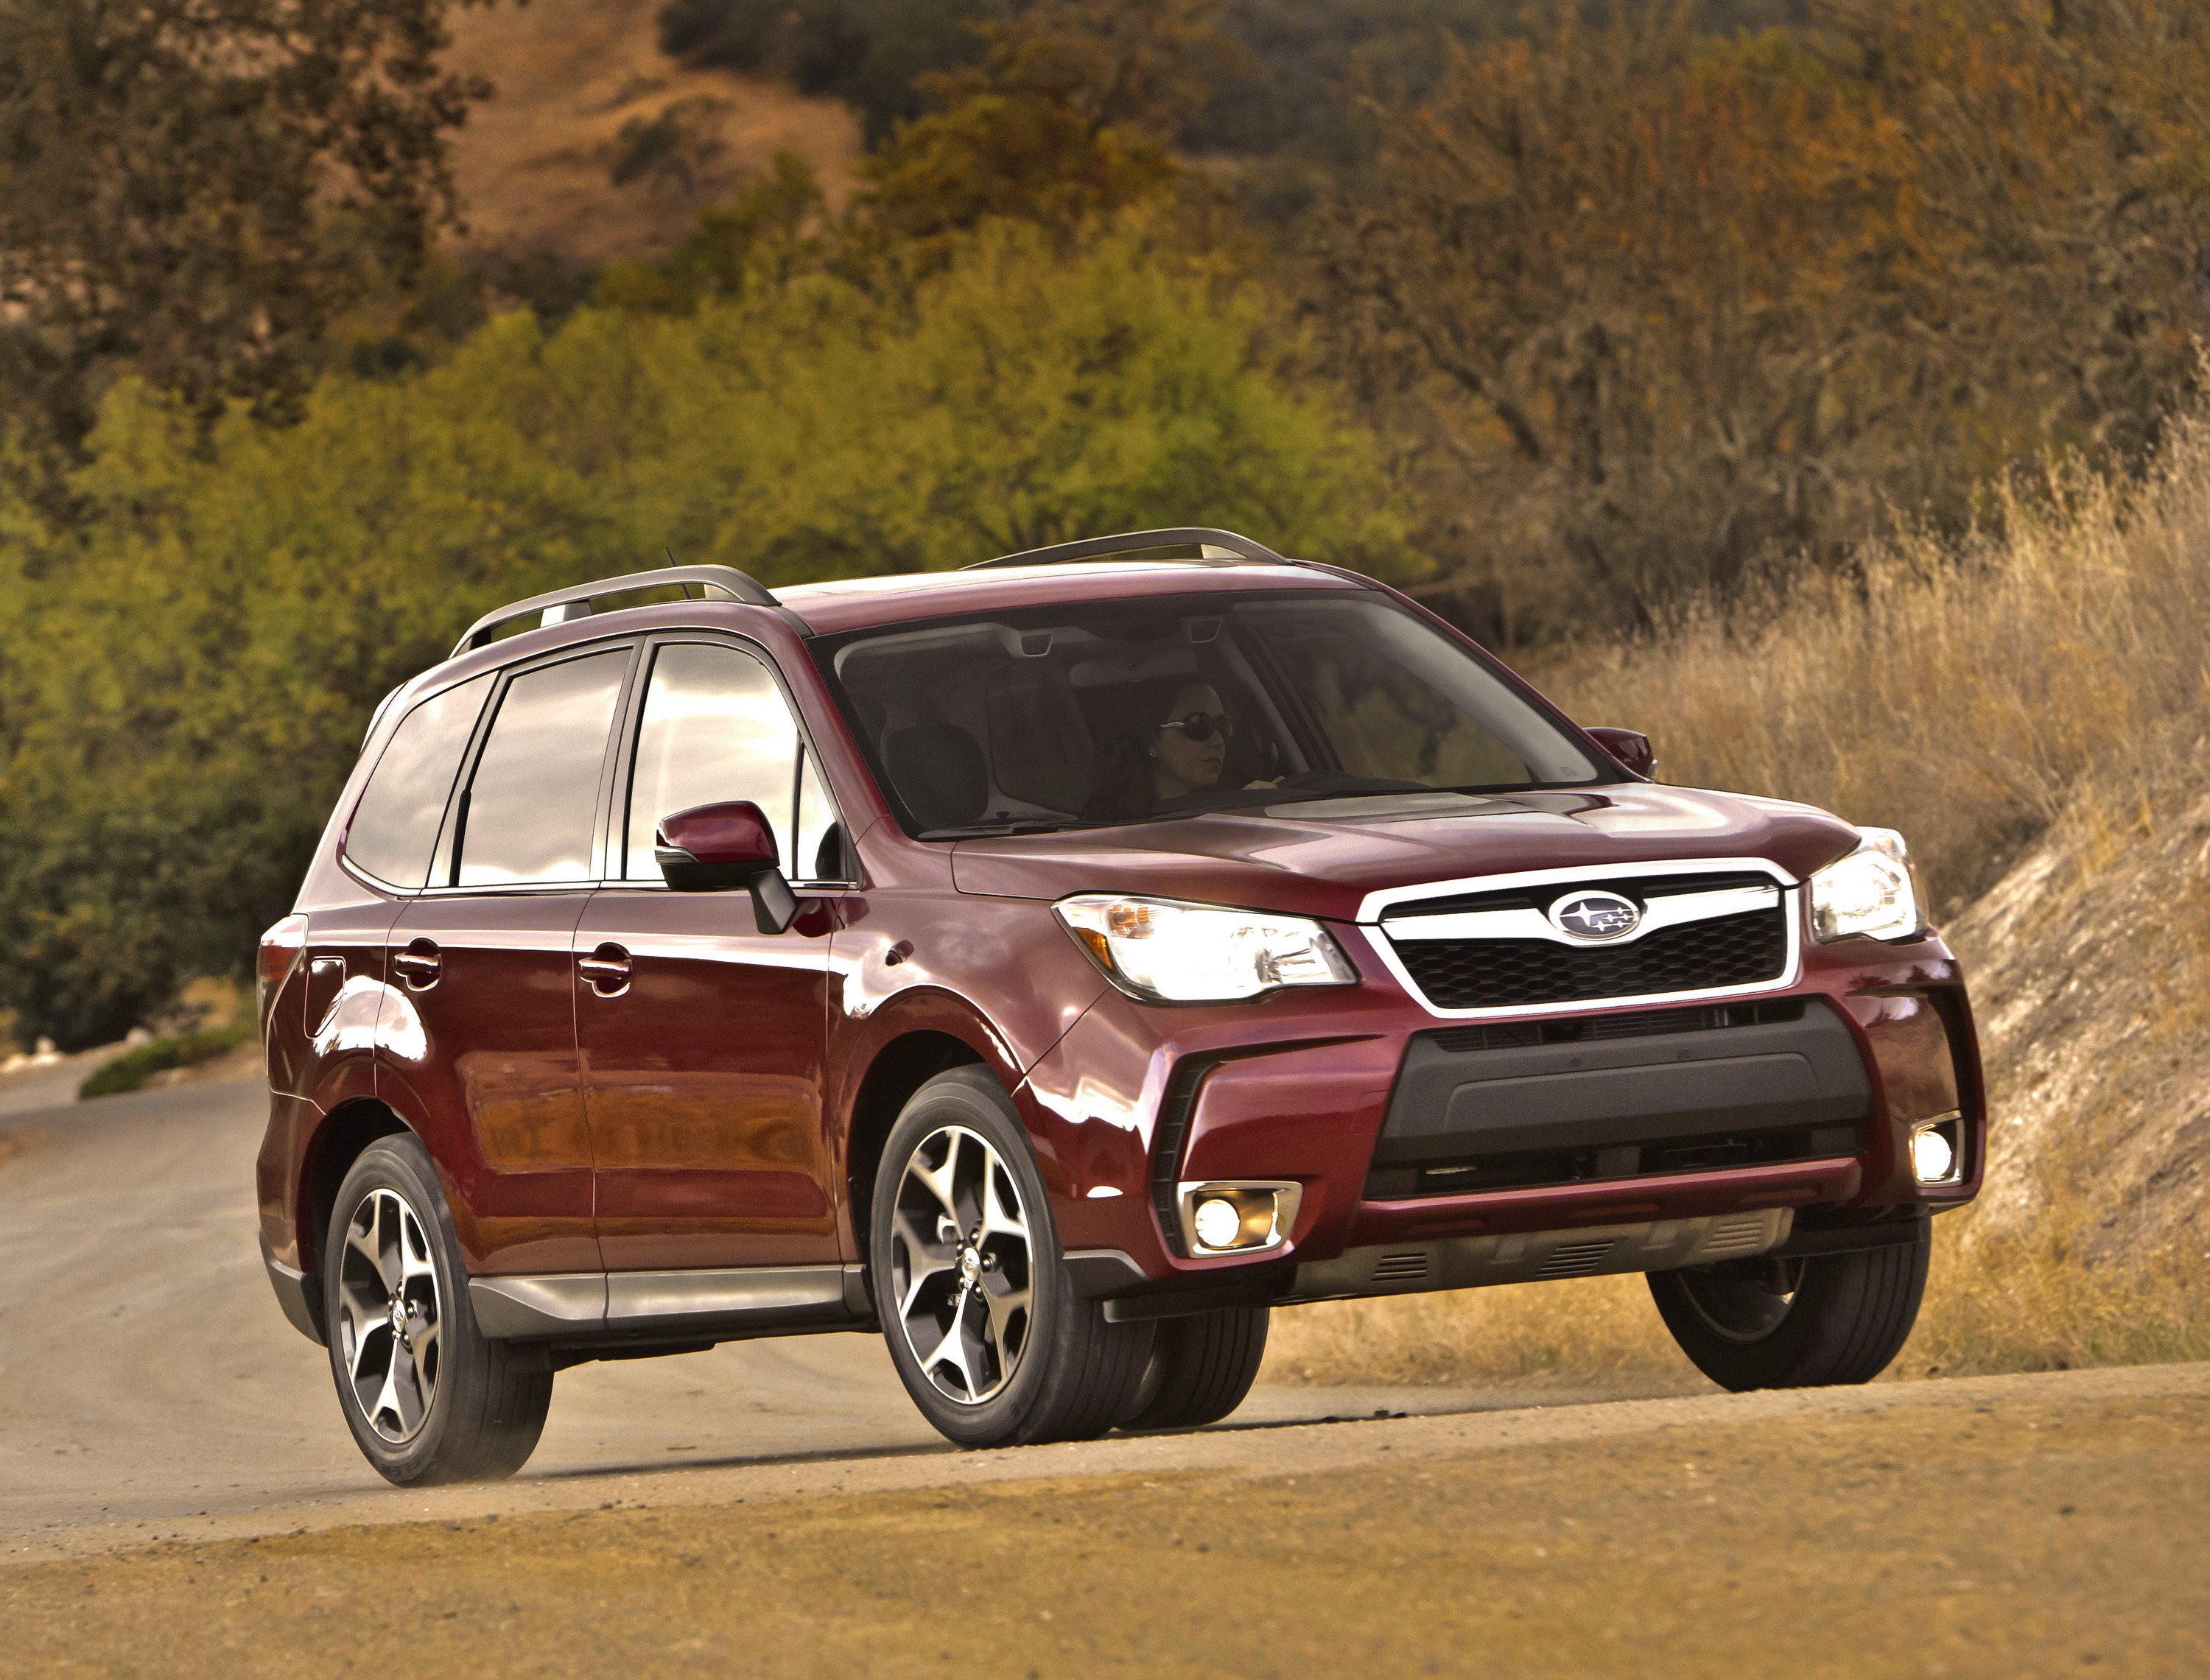 2015 - 2017 subaru forester review - top speed